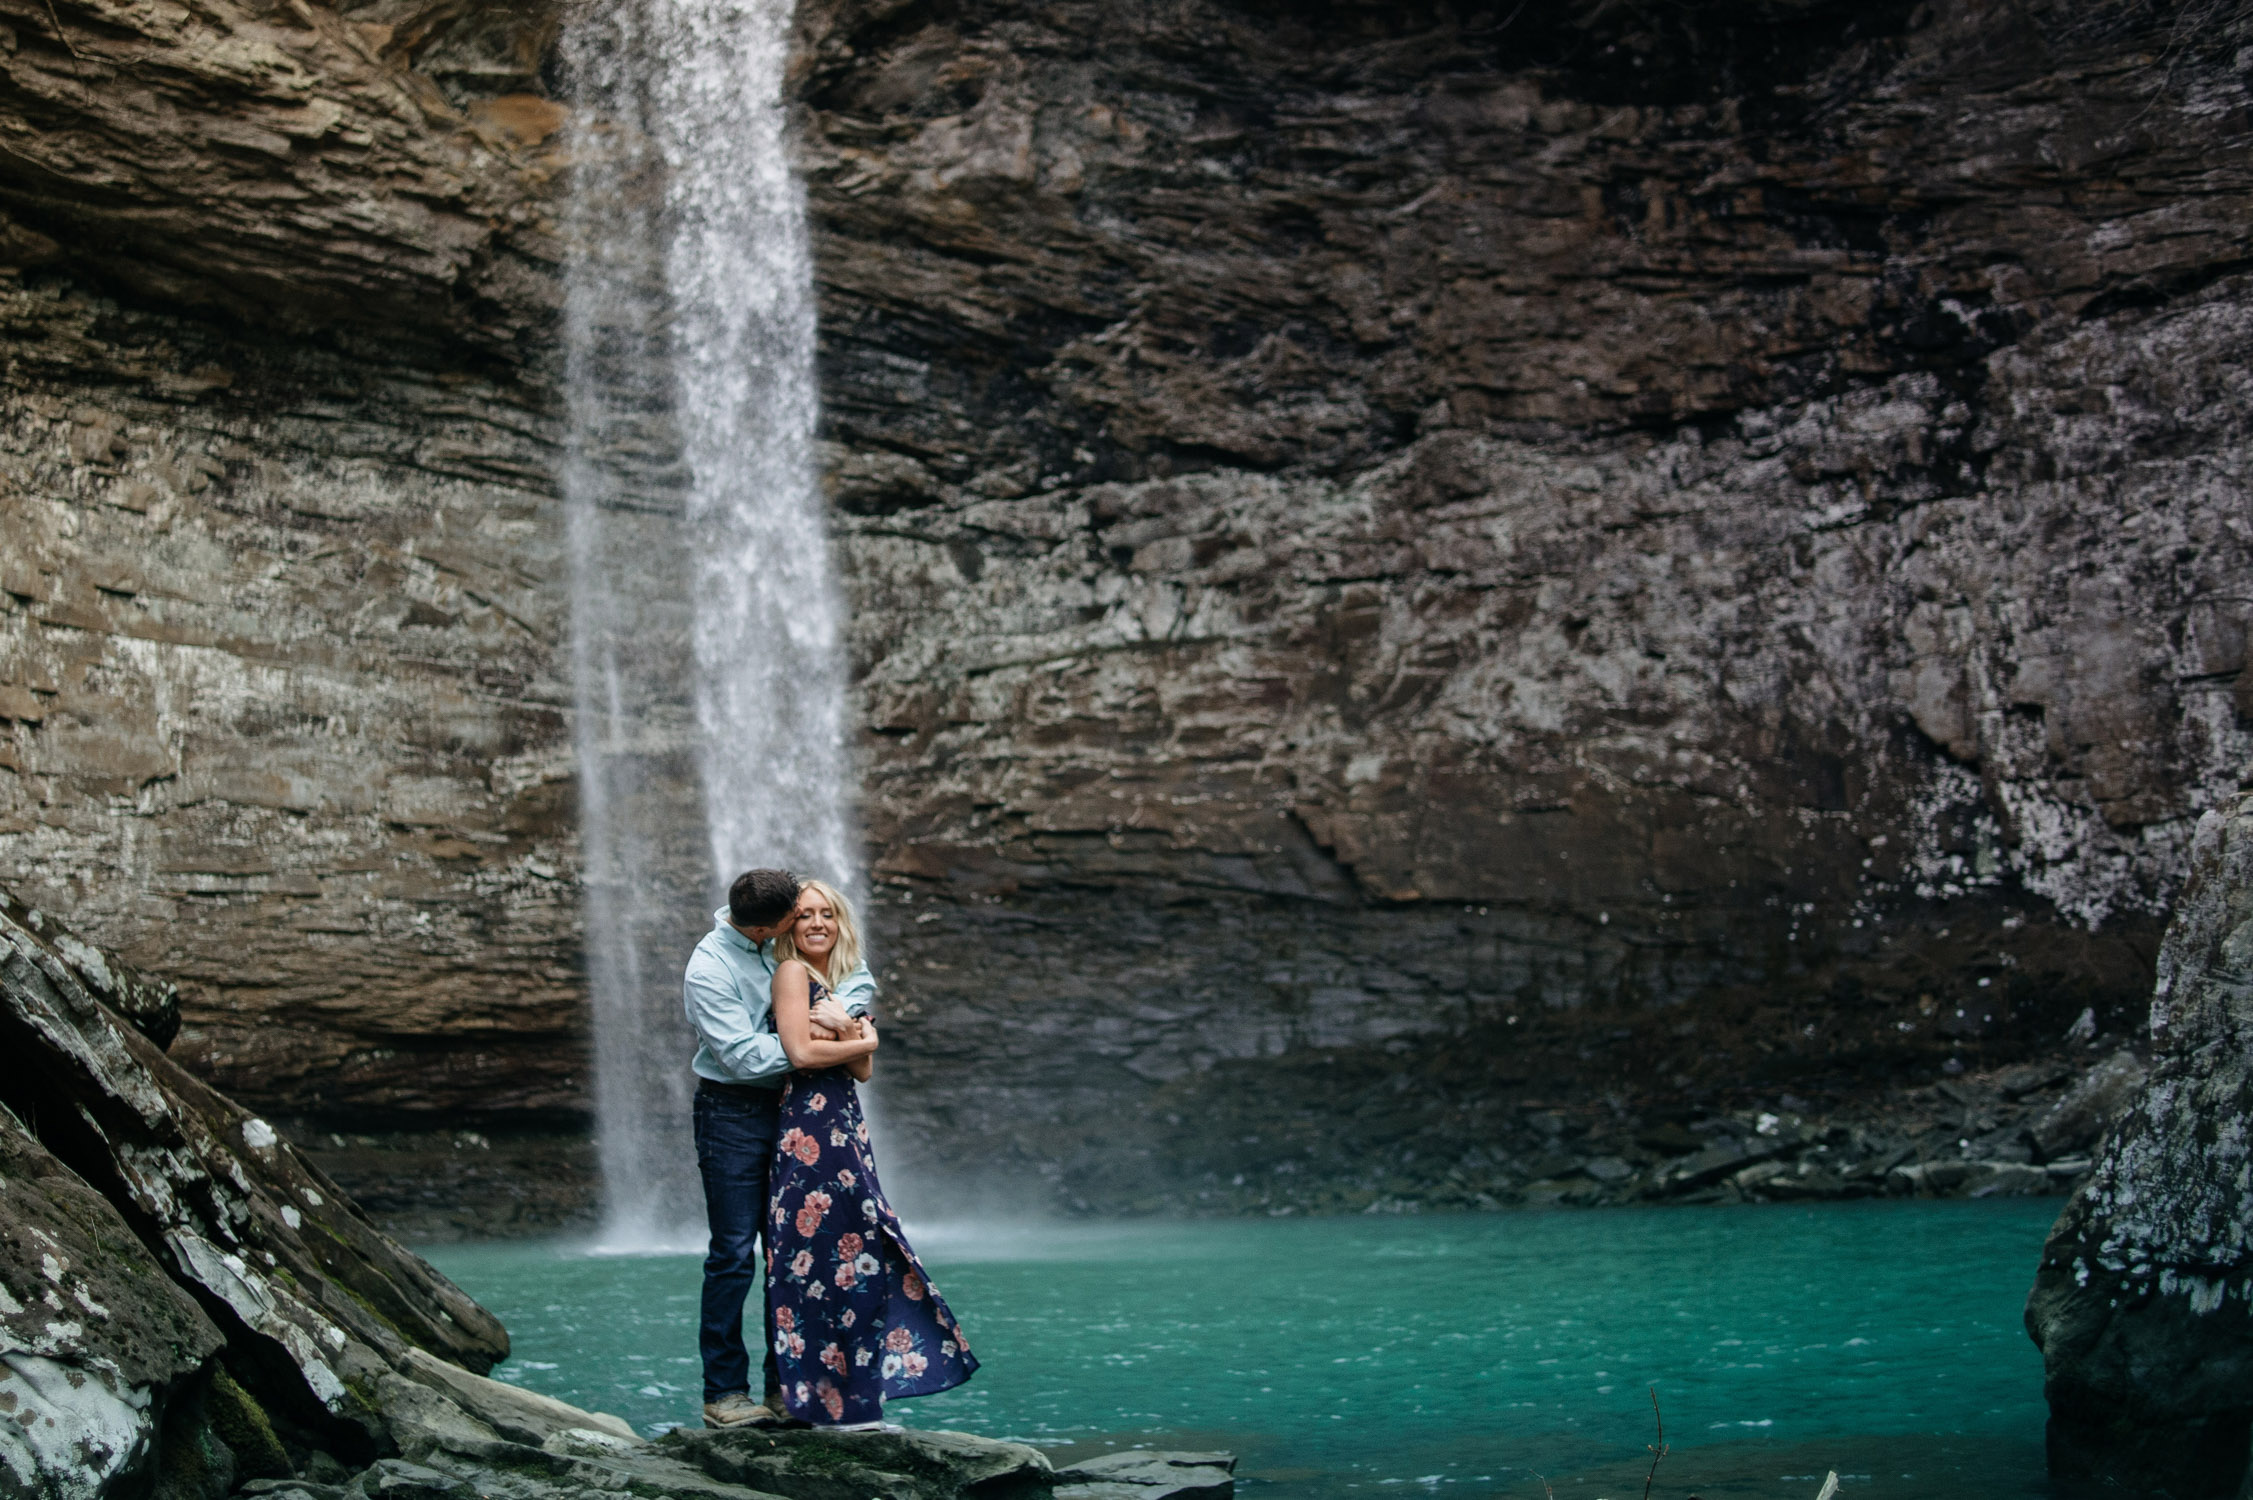 Tennessee Waterfall Engagement Photo by Tara Kneiser